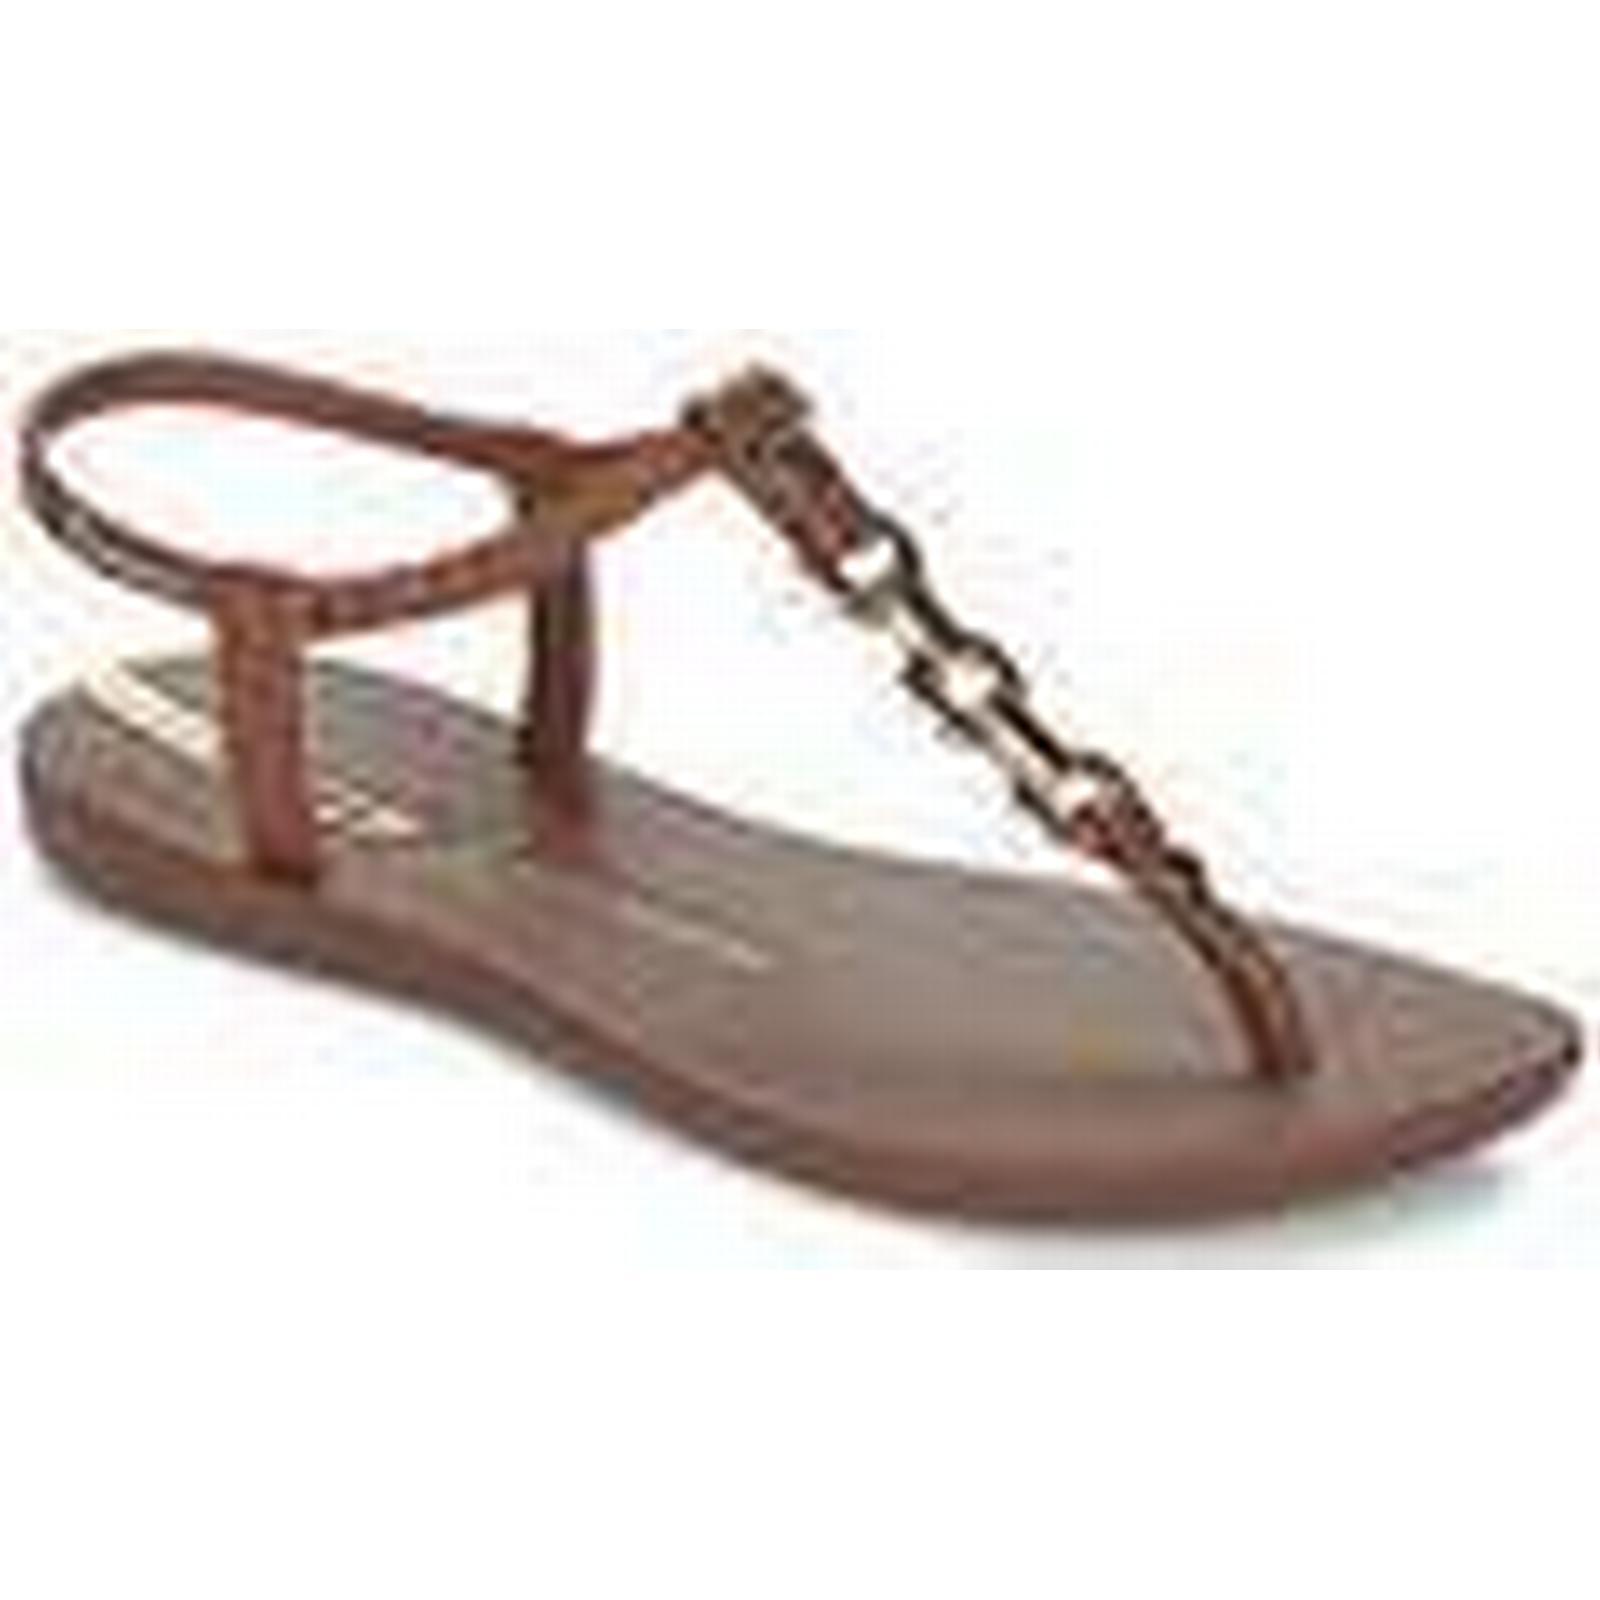 Ipanema  IPANEMA LENNY Sandals UNITY 2017  women's Sandals LENNY in Brown a80f24